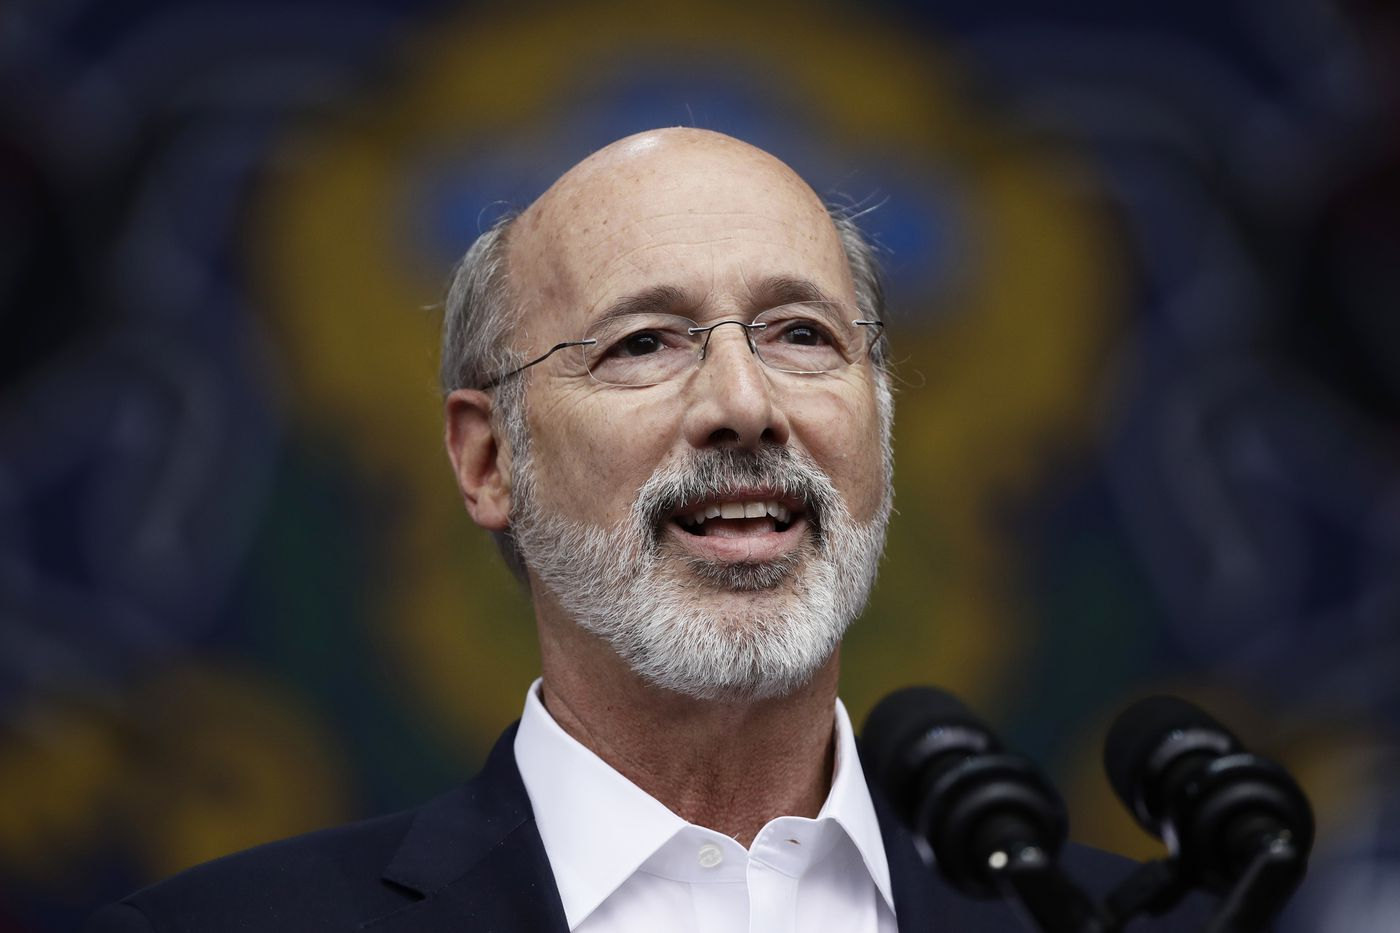 About the things Gov. Wolf takes credit for   John Baer